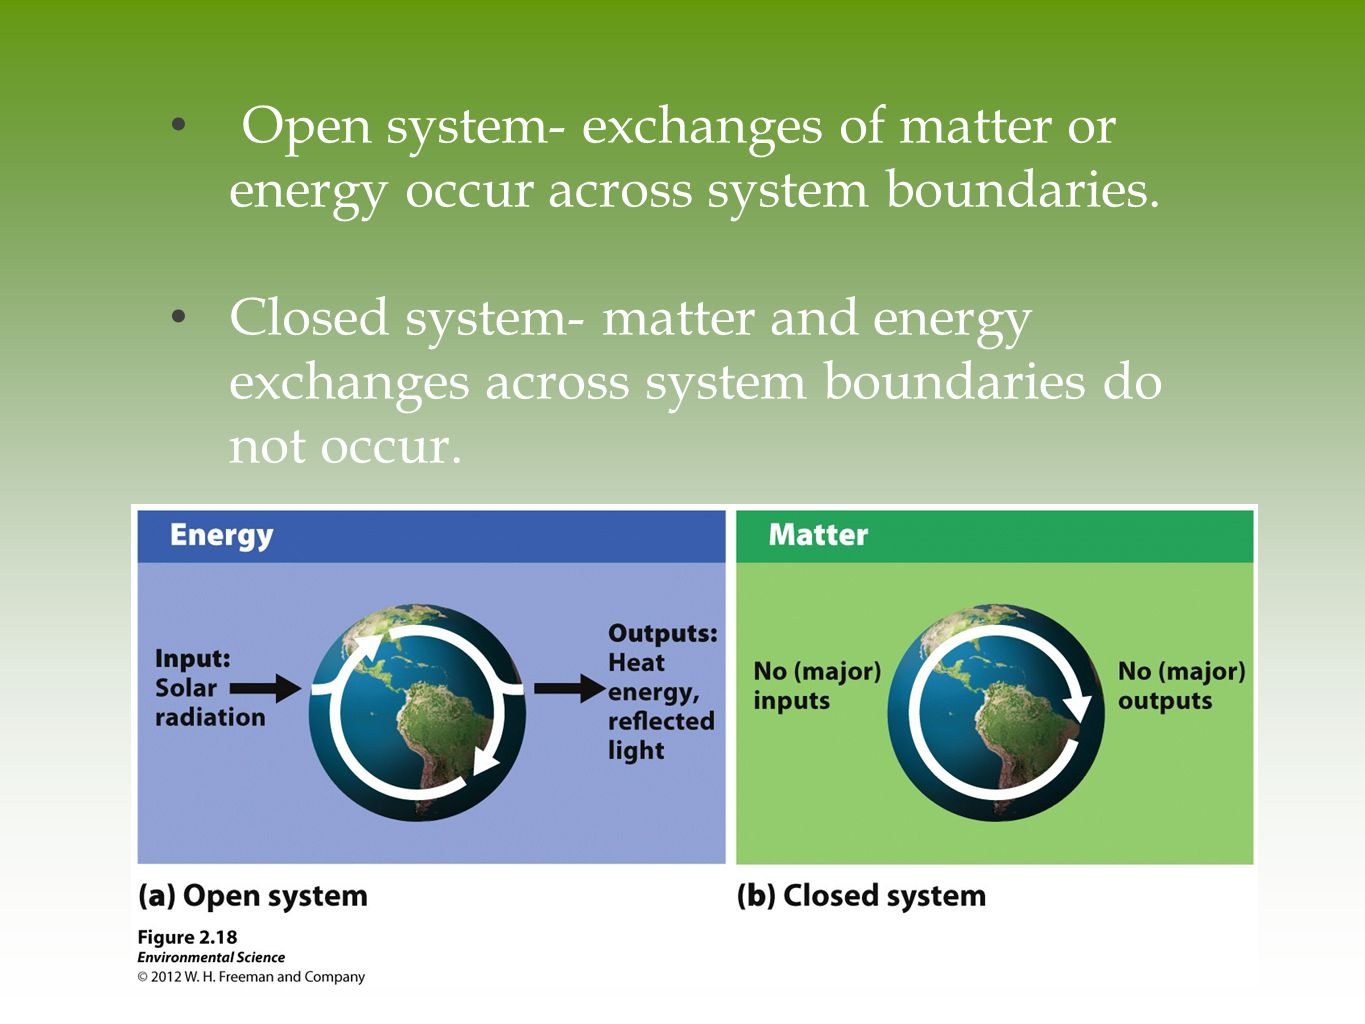 Open system- exchanges of matter or energy occur across system boundaries.